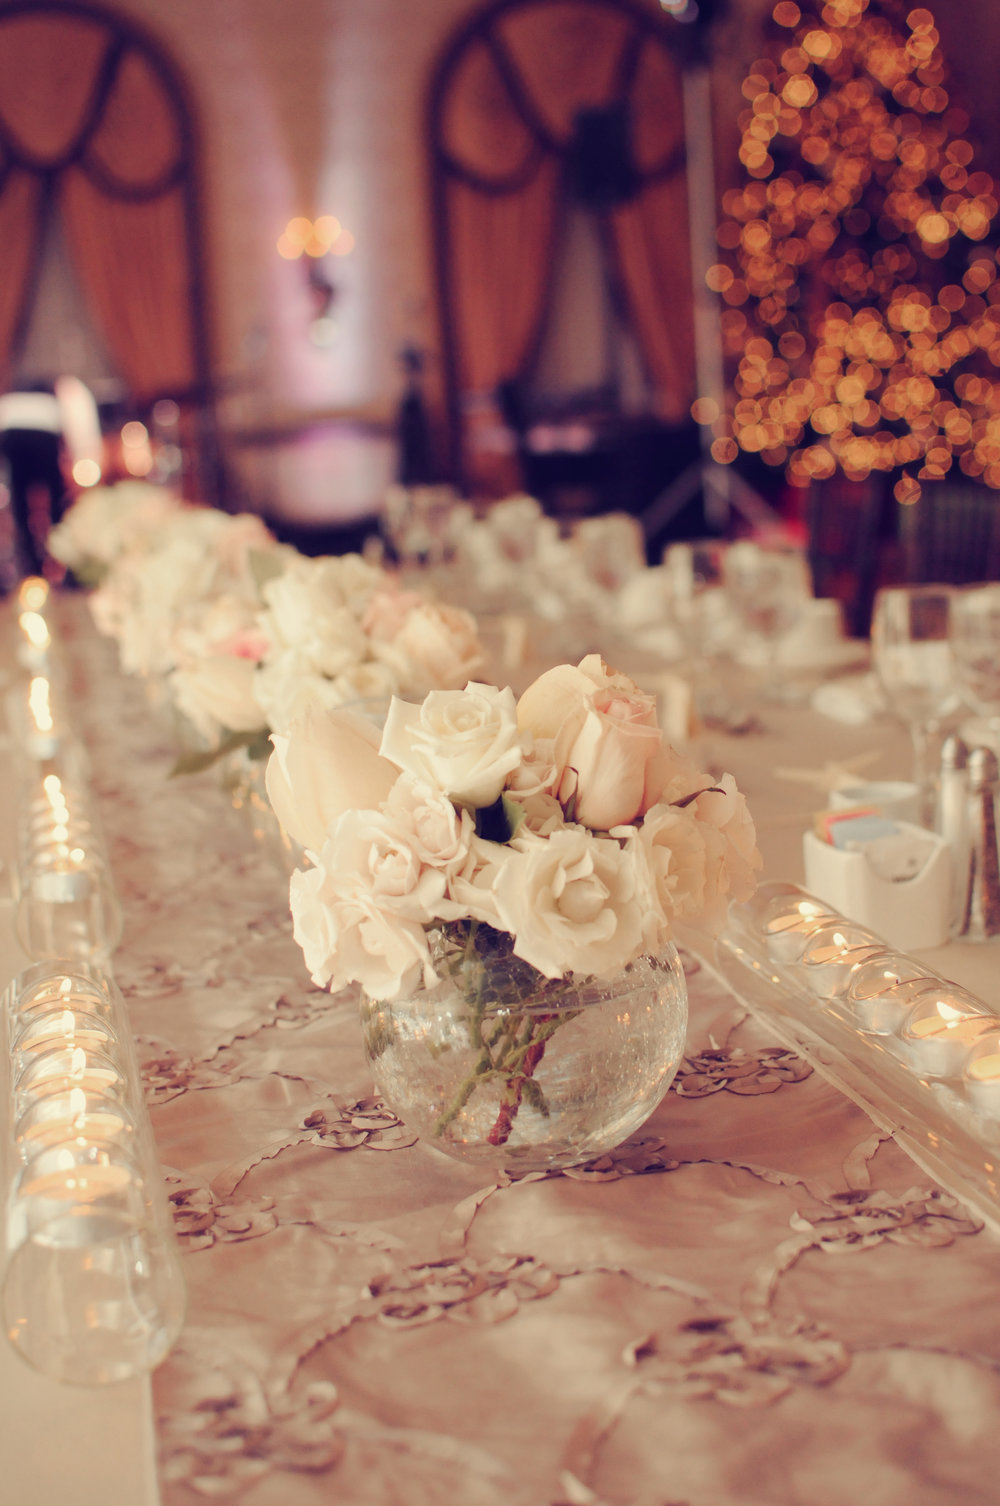 Head Table, Gold Ballroom, Westin Poinsett, Greenville, SC - Alea Moore Photography - lifewithstyle.co